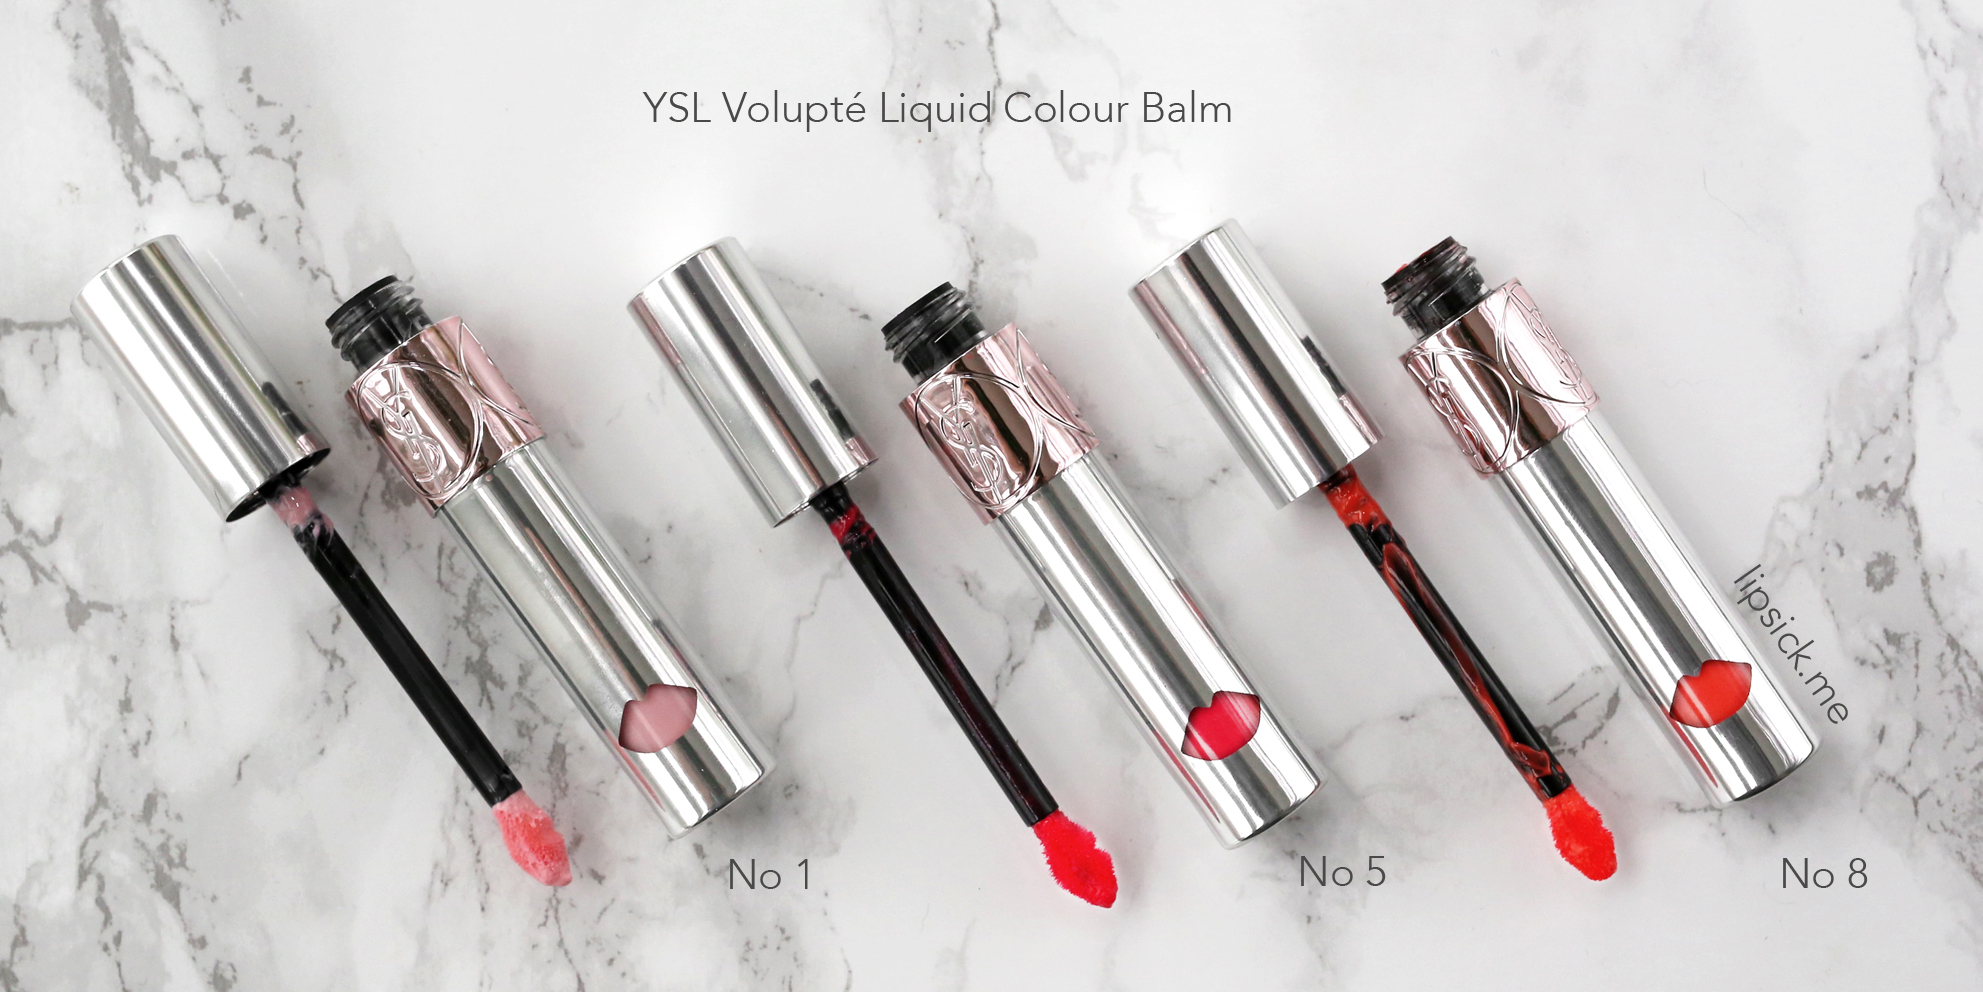 YSL Volupté Liquid Colour Balm - lipsick.me - canadian beauty and lipstick blog - nathalie martin_7502.jpg